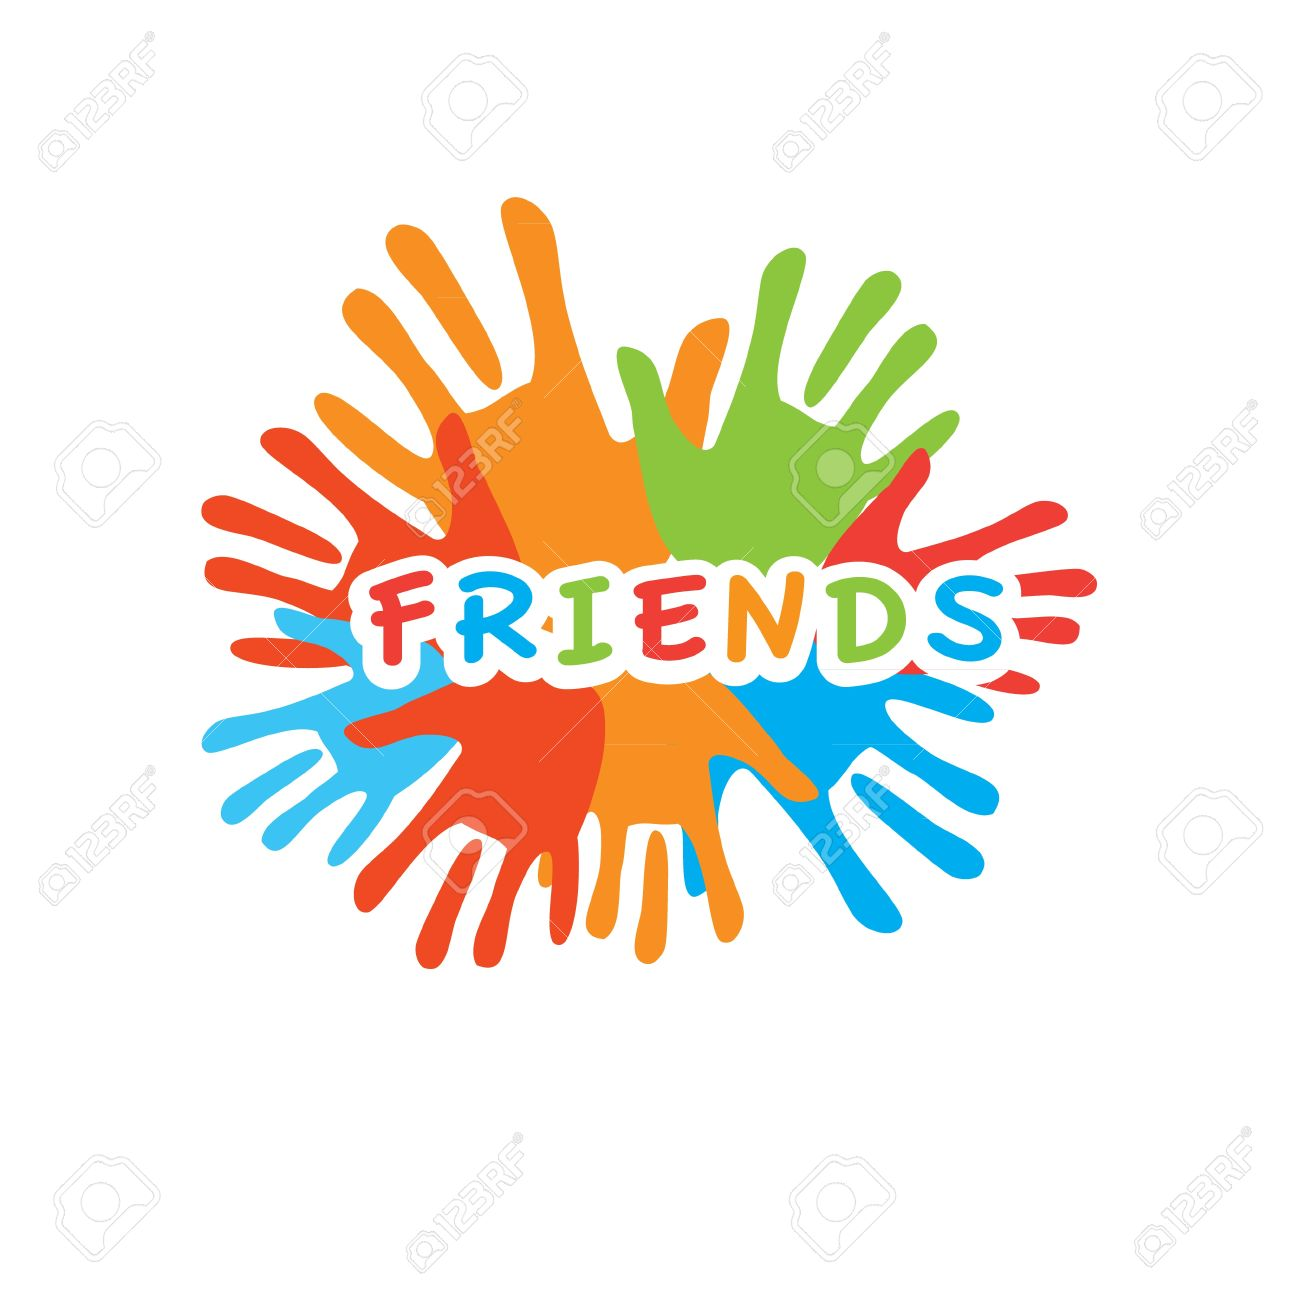 Sign of friends vector symbol of friendship uniting royalty free sign of friends vector symbol of friendship uniting stock vector 20865257 biocorpaavc Images